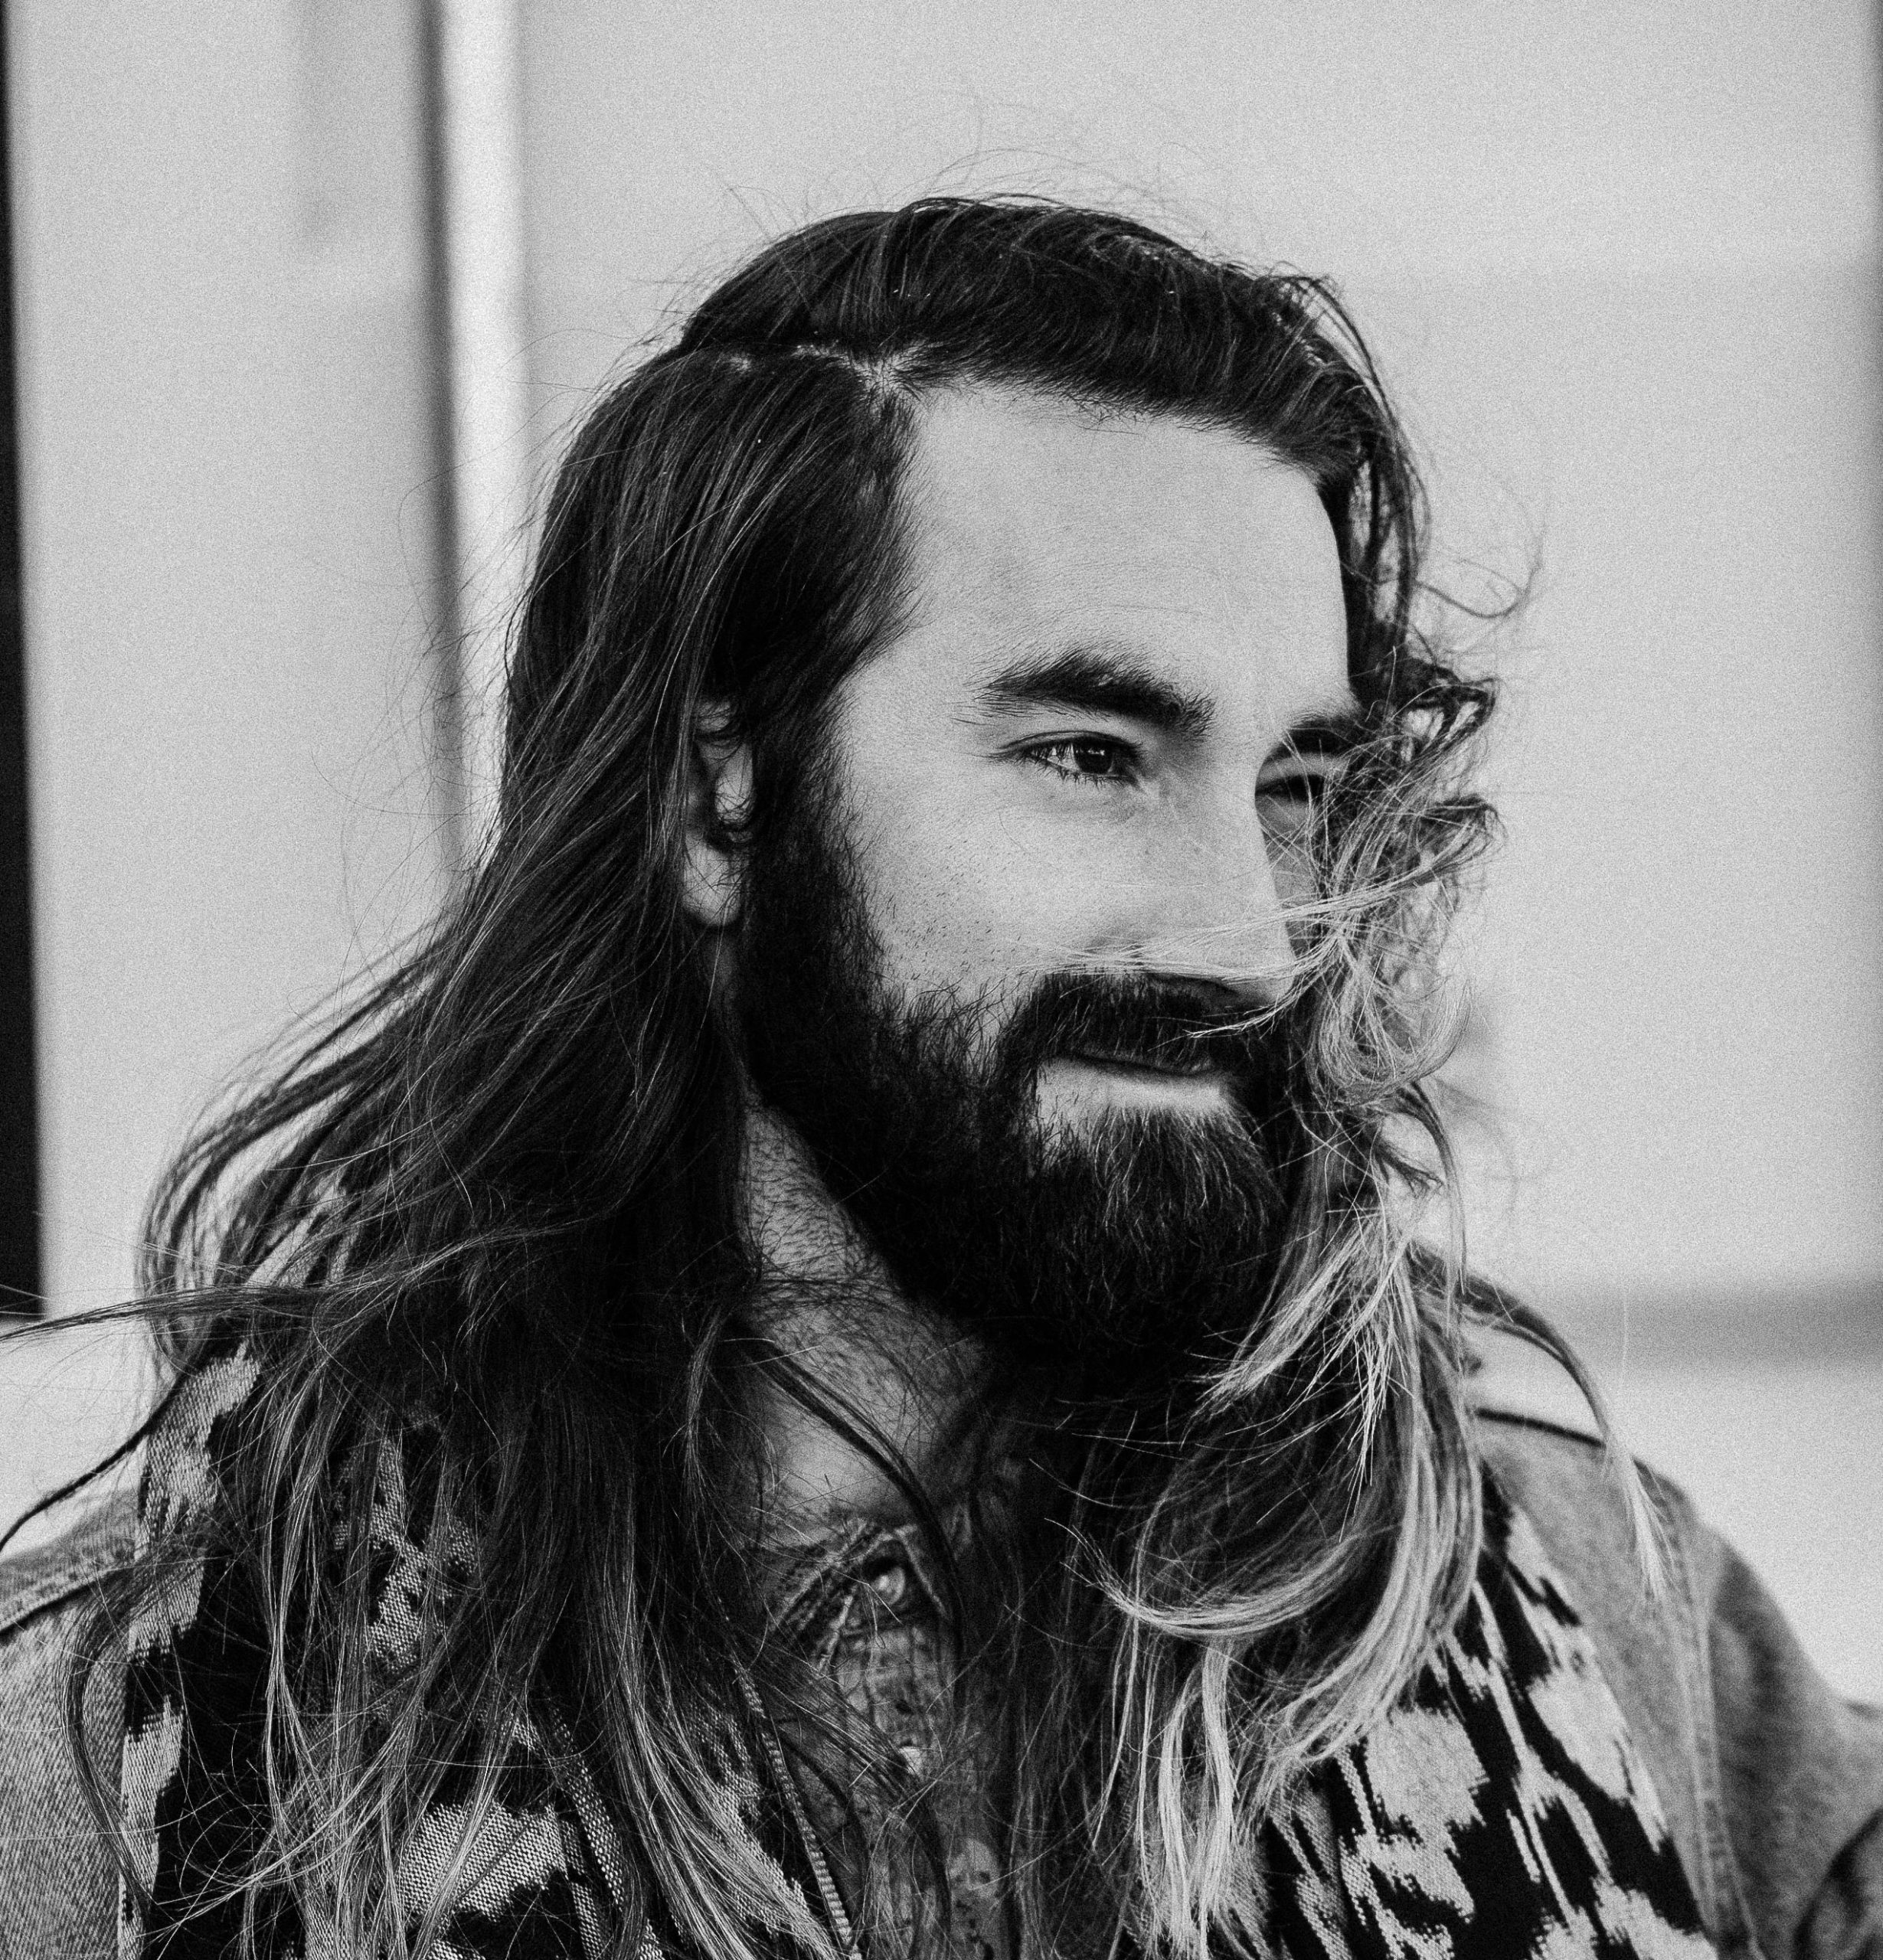 Comment bien tailler sa barbe ?